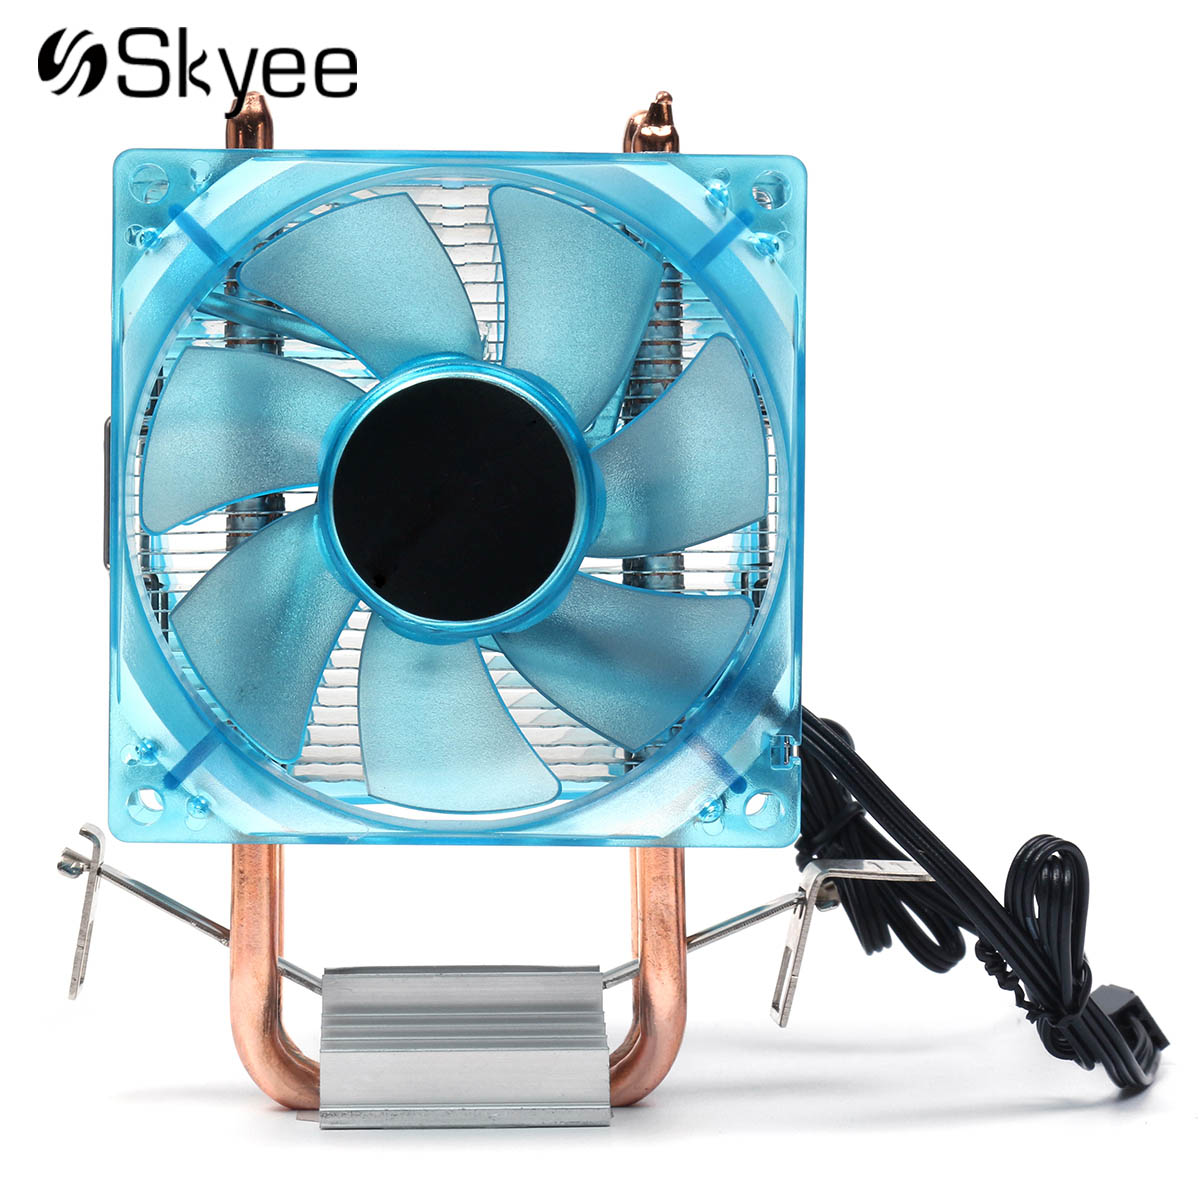 90mm Dual Copper Pipe LED CPU Cooling Fan 3pin Aluminum Heatsink Cooler Cooling Fan for AMD FM1 AM2 + AM3 +Intel 775 1155 1156 three cpu cooler fan 4 copper pipe cooling fan red led aluminum heatsink for intel lga775 1156 1155 amd am2 am2 am3 ed